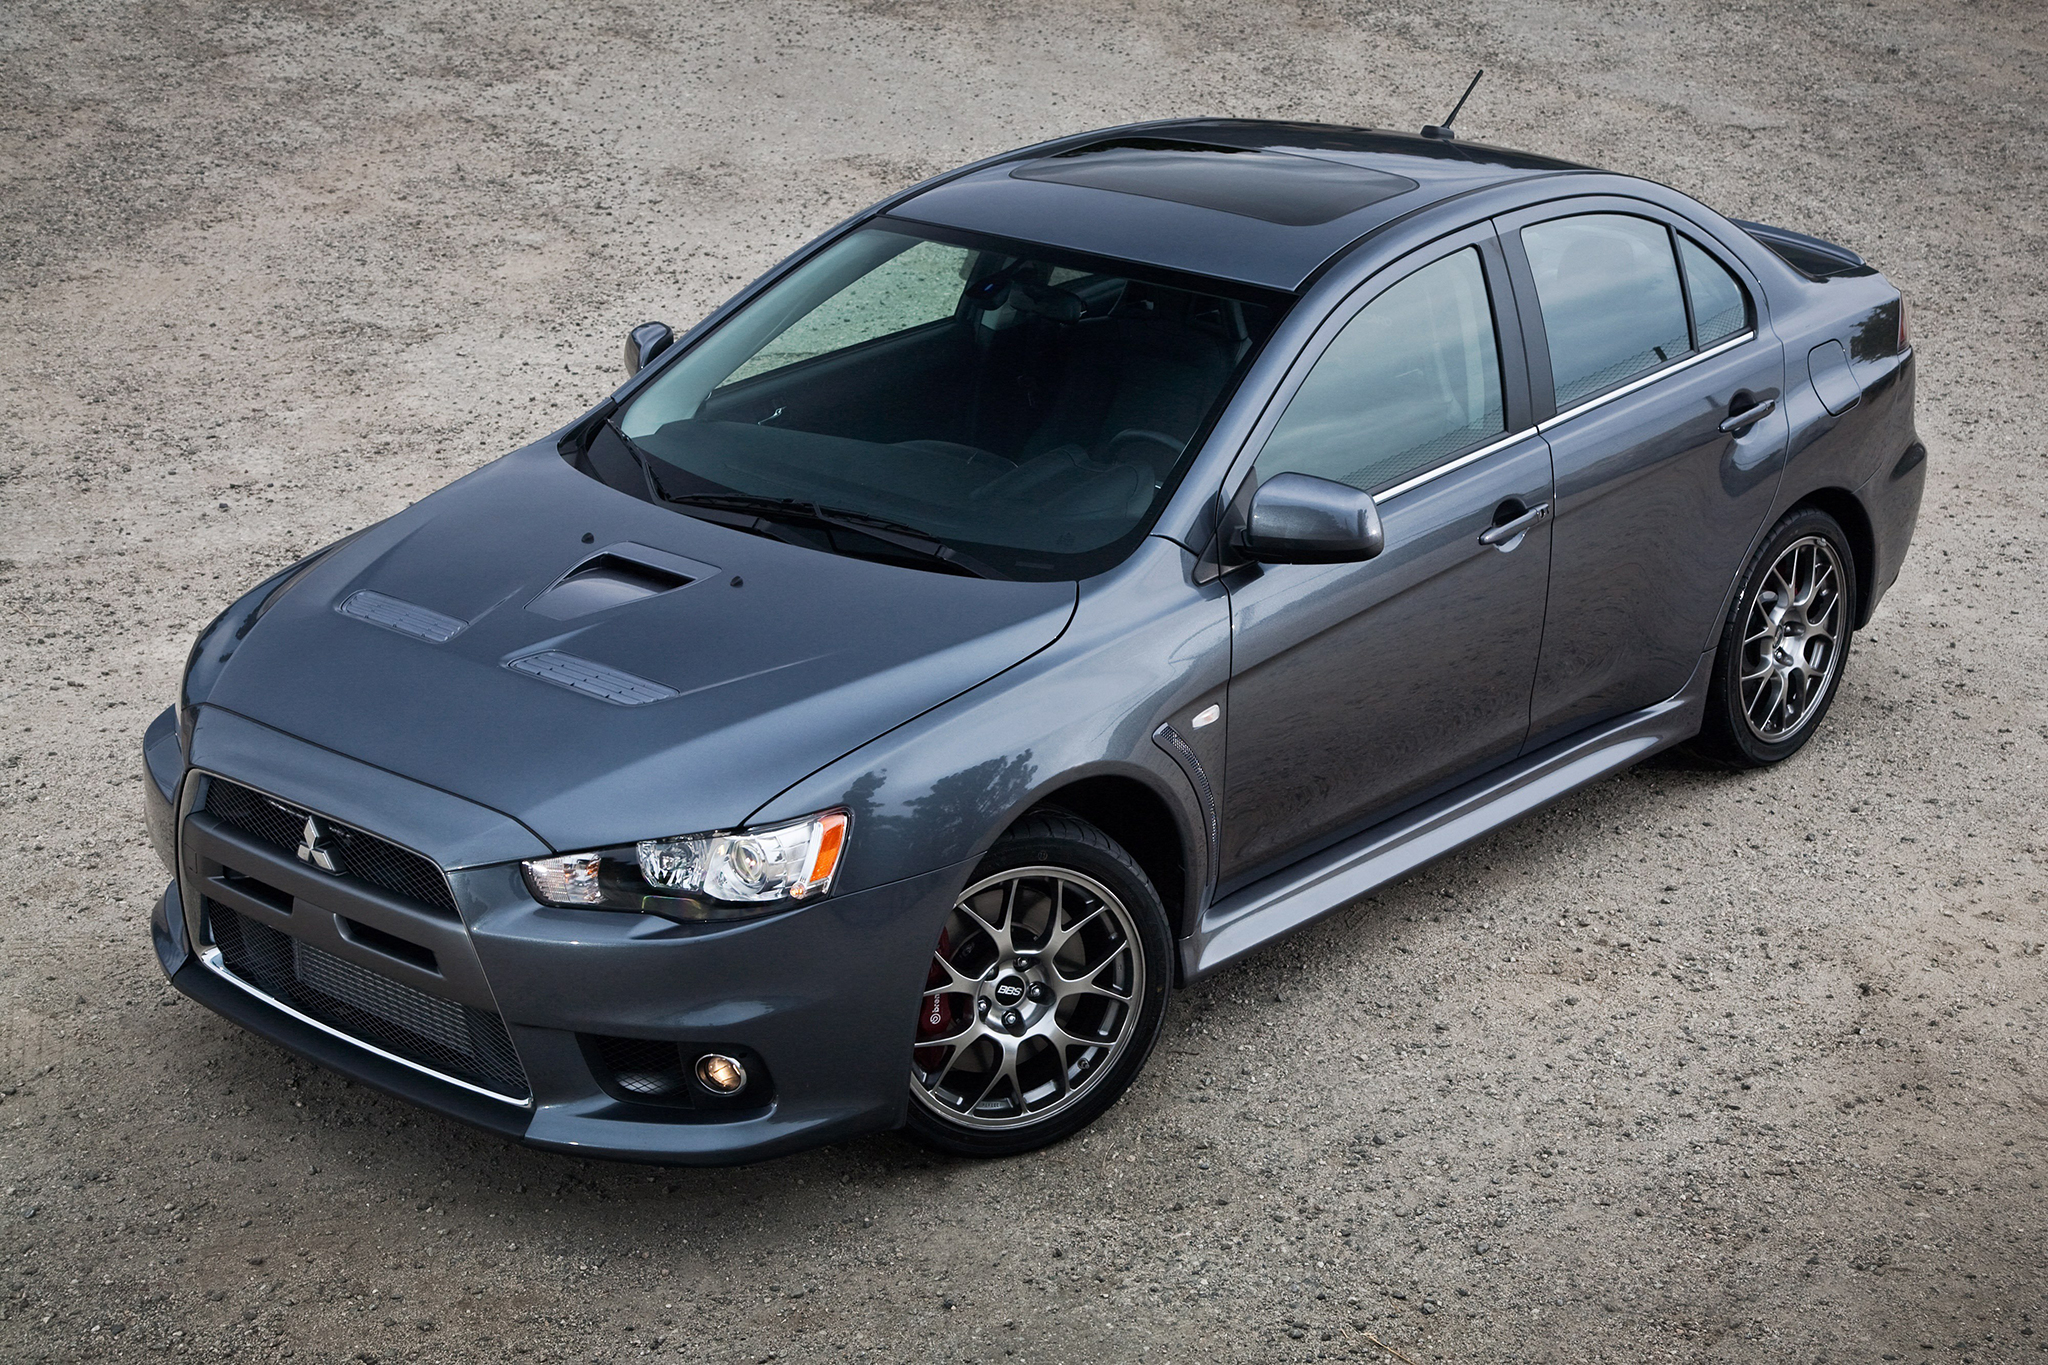 Lovely 2015 Mitsubishi Lancer Evolution Updated For Its Last Year